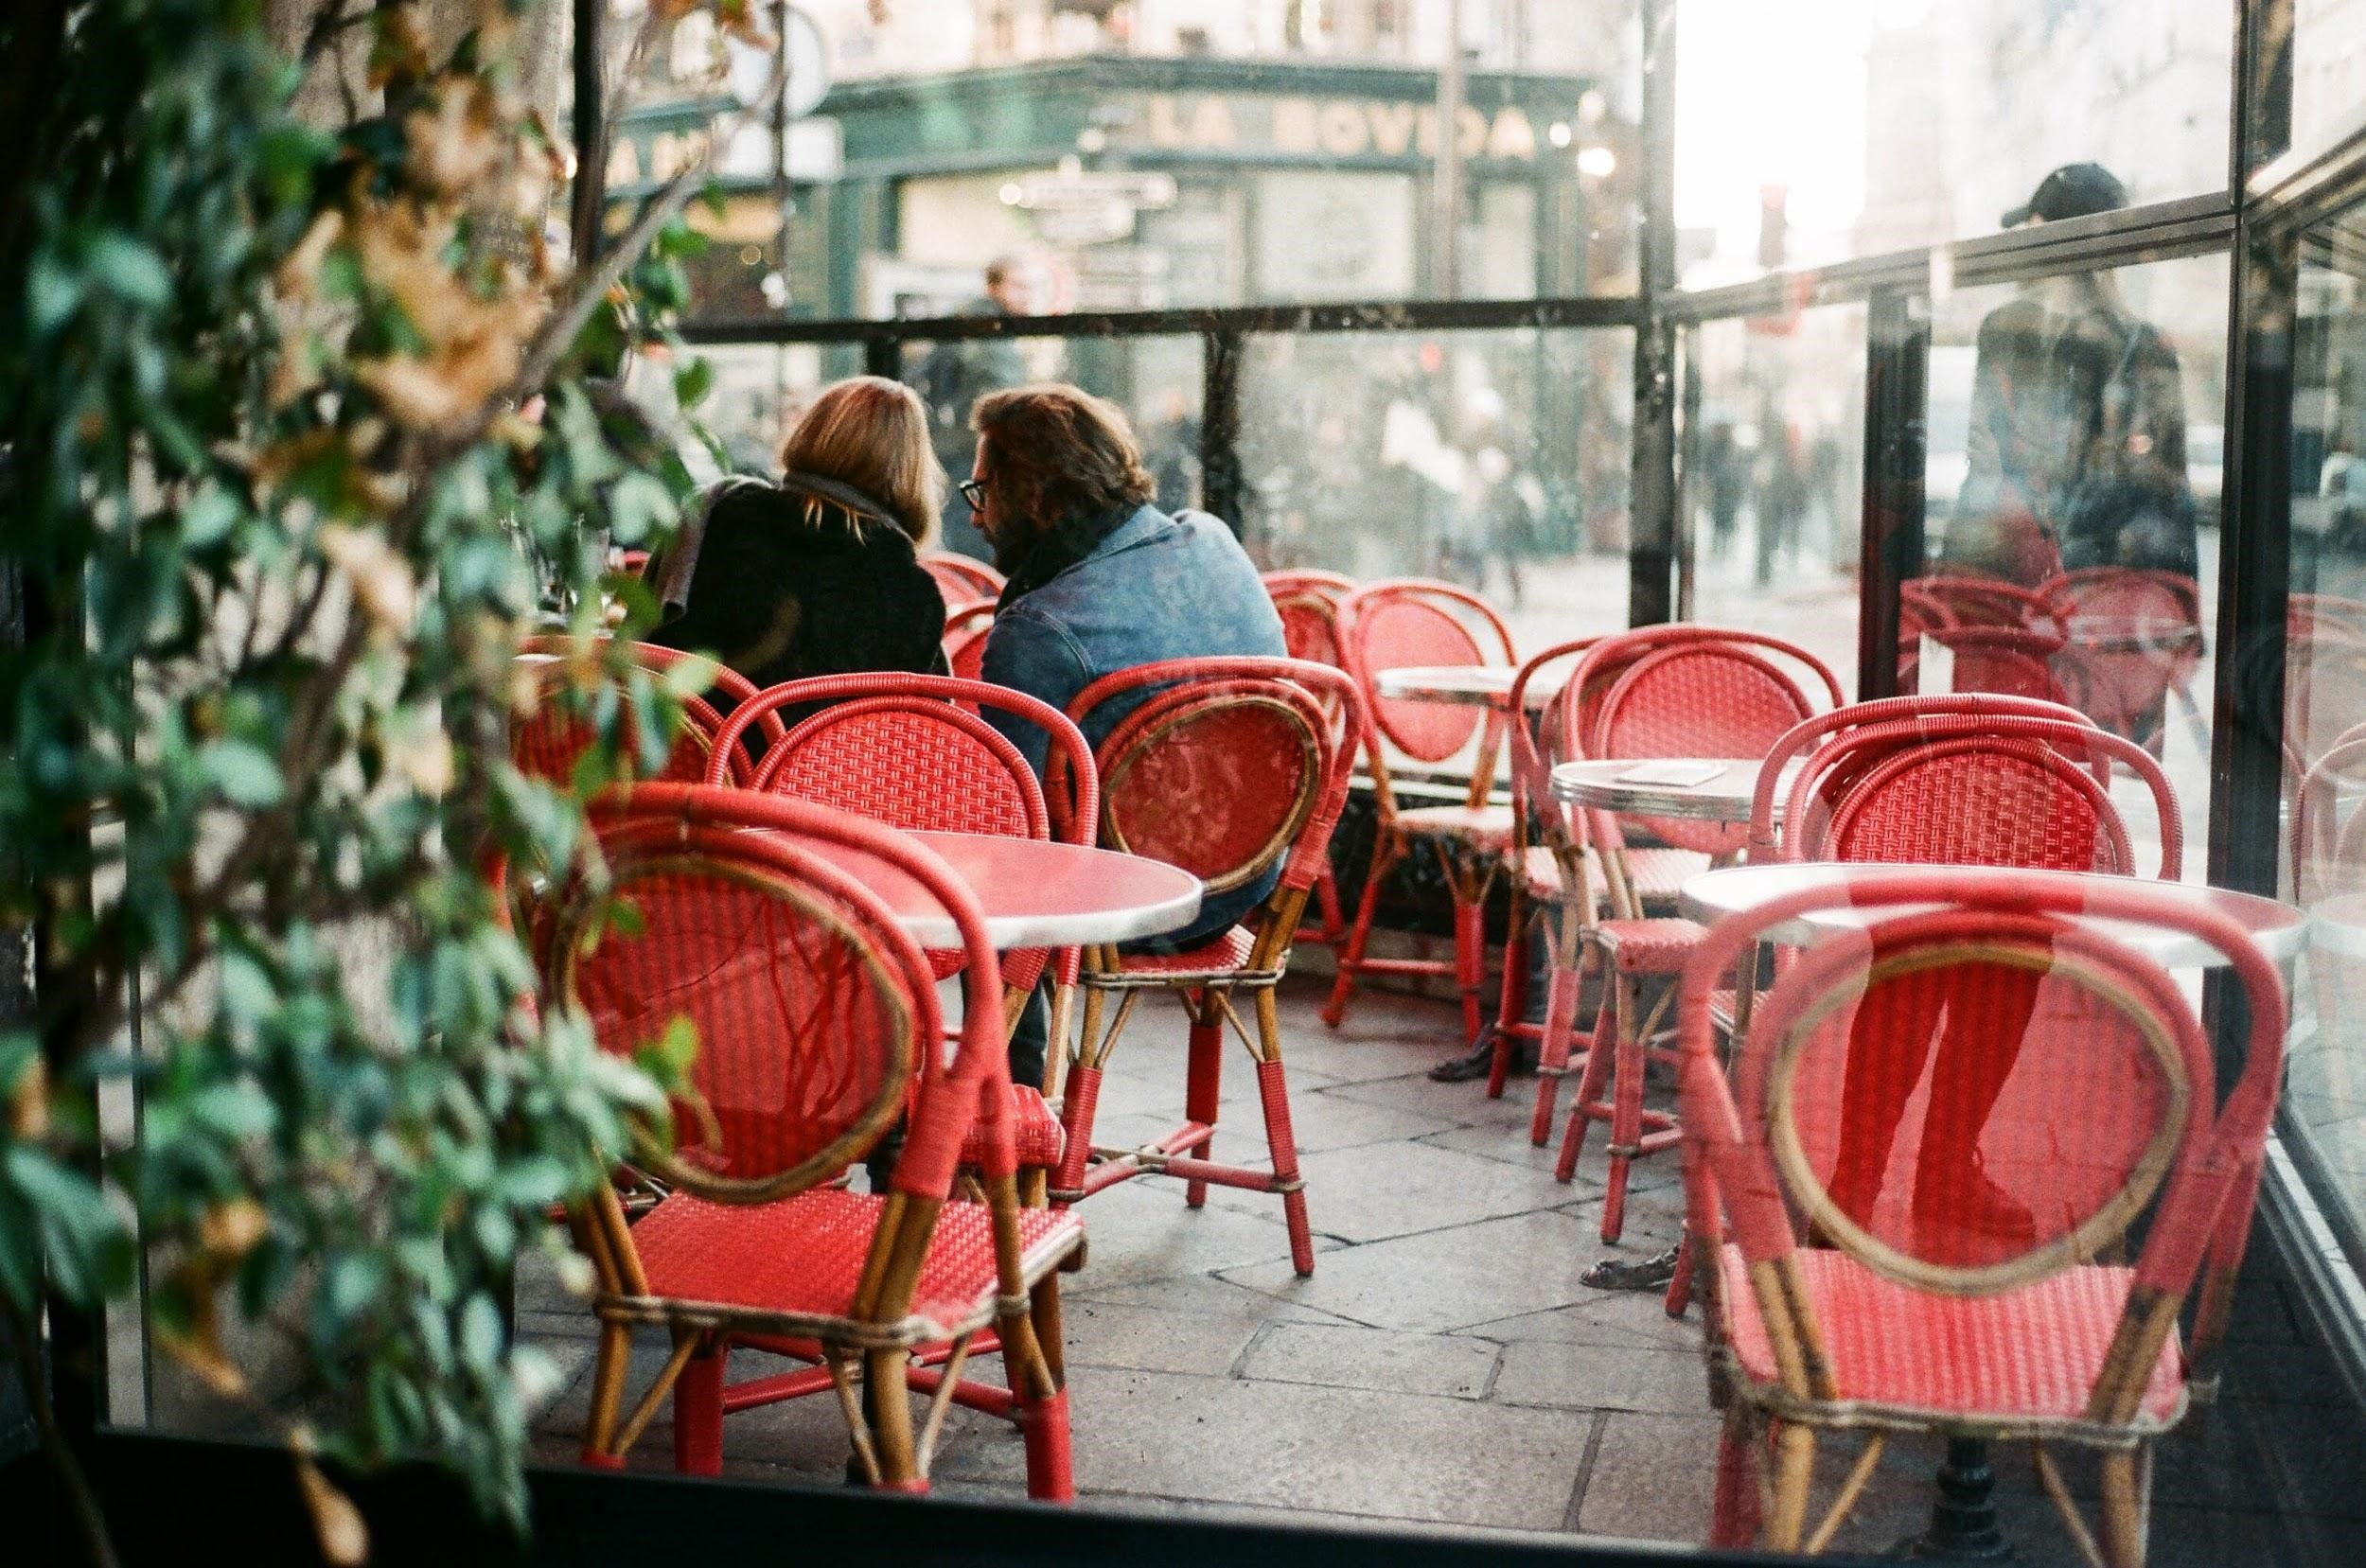 a cafe with outdoor seating and red chairs